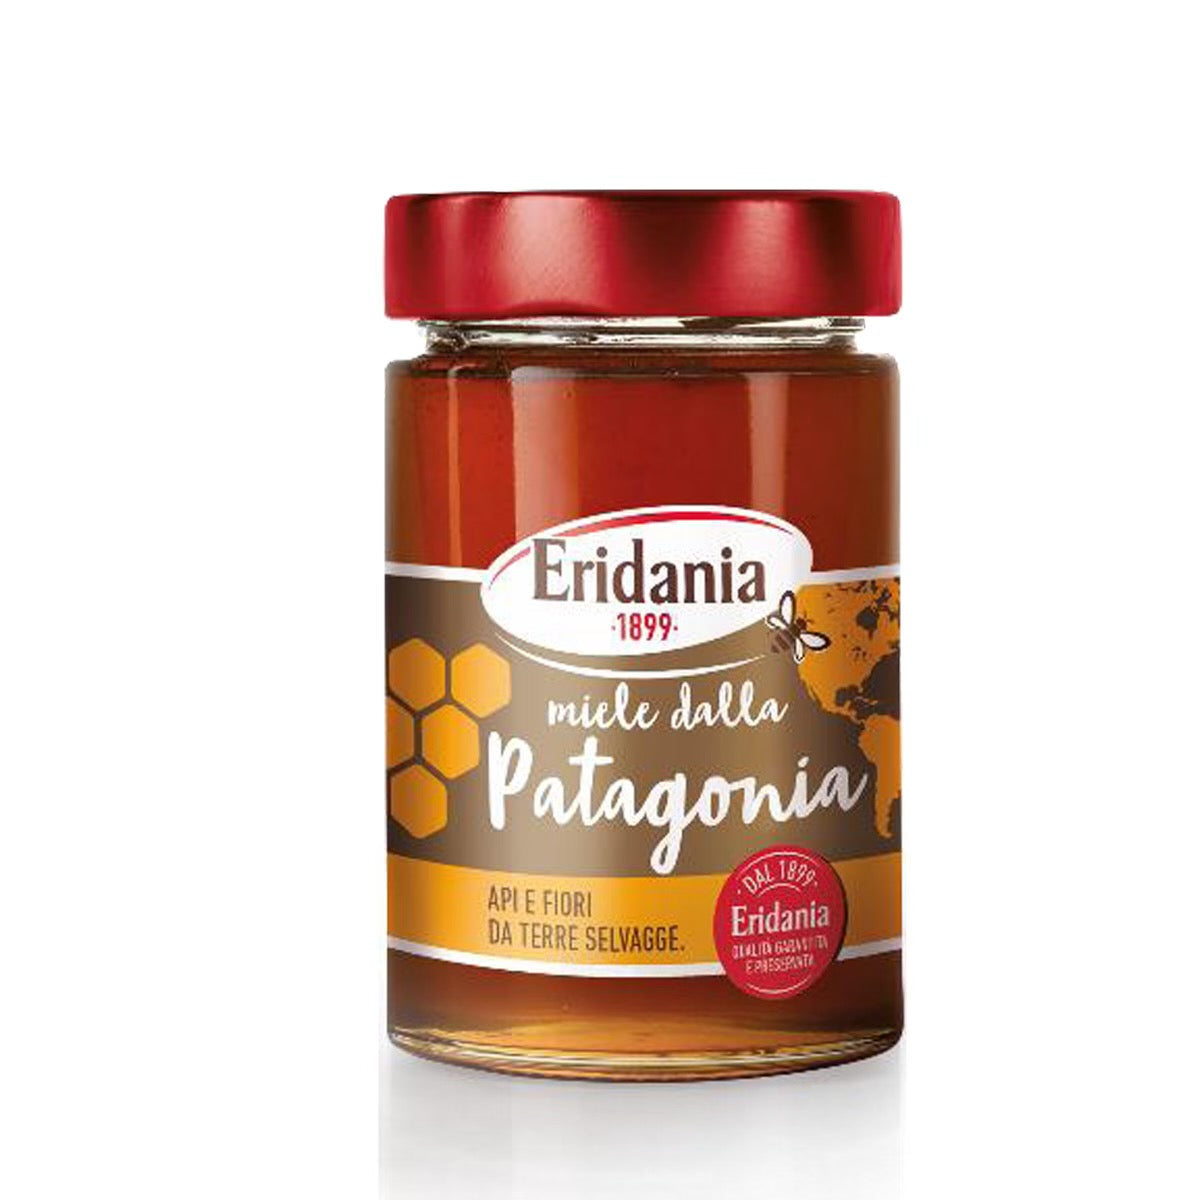 Eridania honey from Patagonia 250g